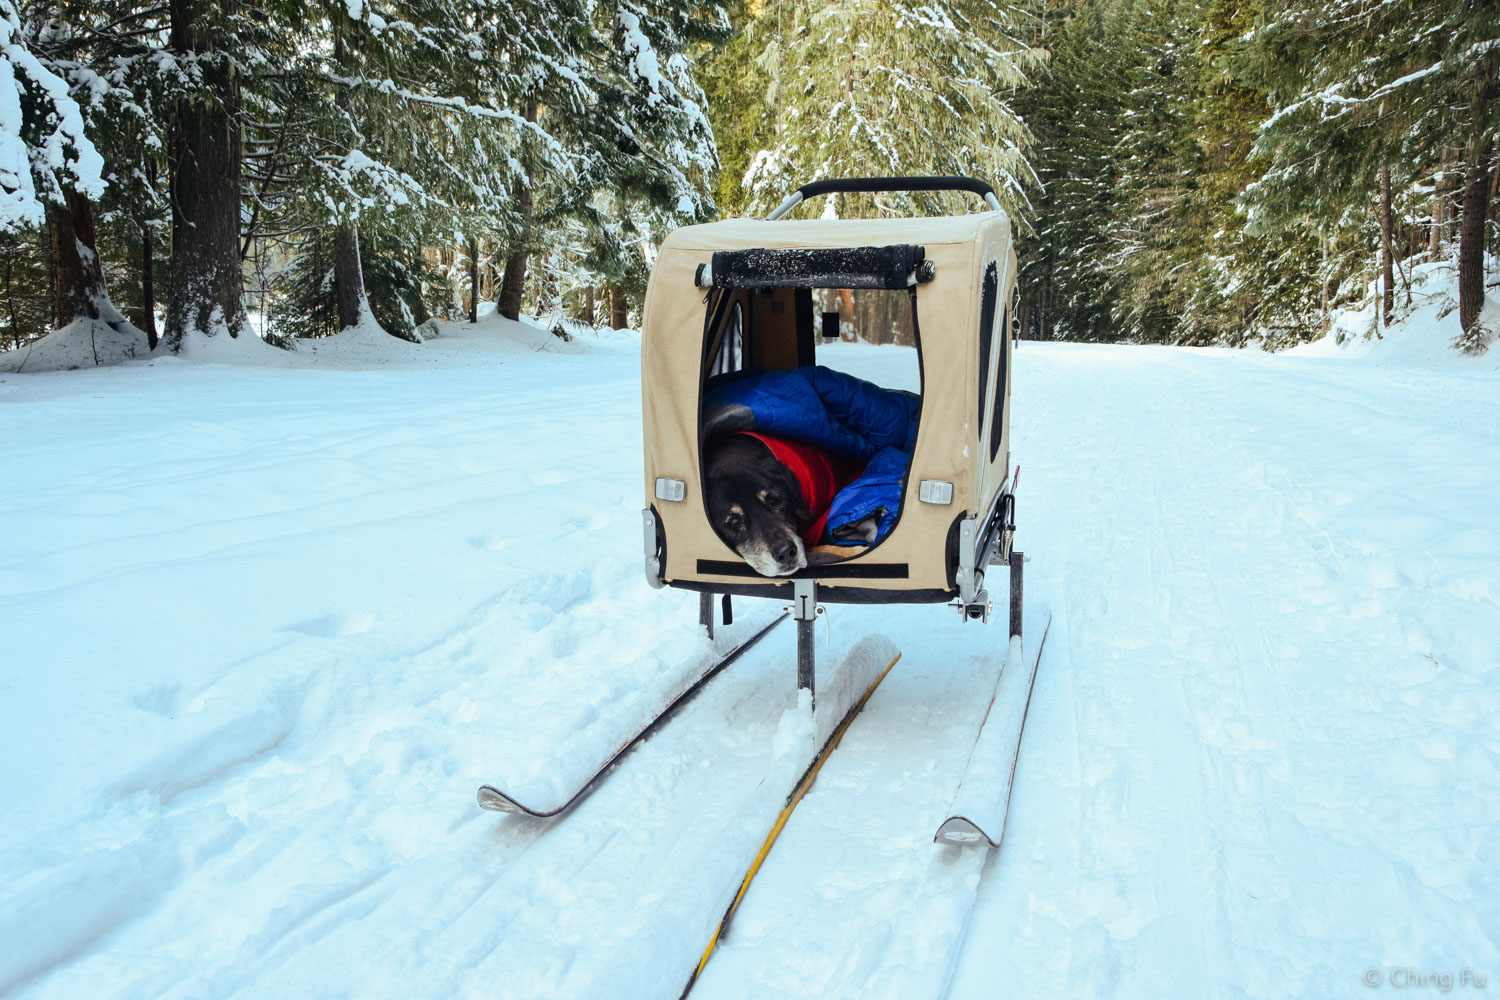 We converted her trailer to have skis so it would also work in the snow.